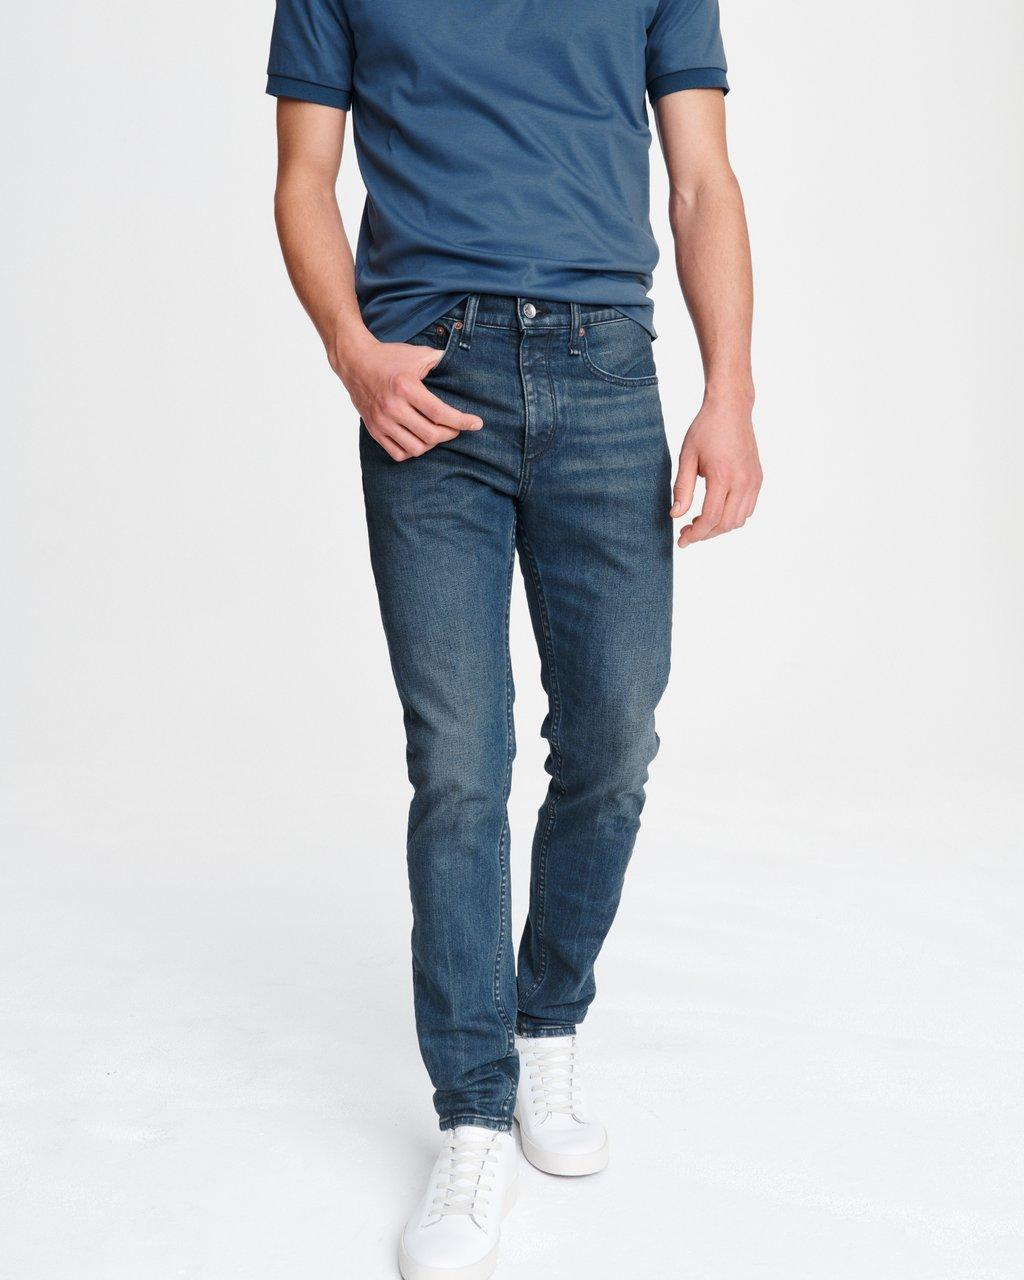 FIT 1 IN ROCK CITY - 30 INCH INSEAM AVAILABLE